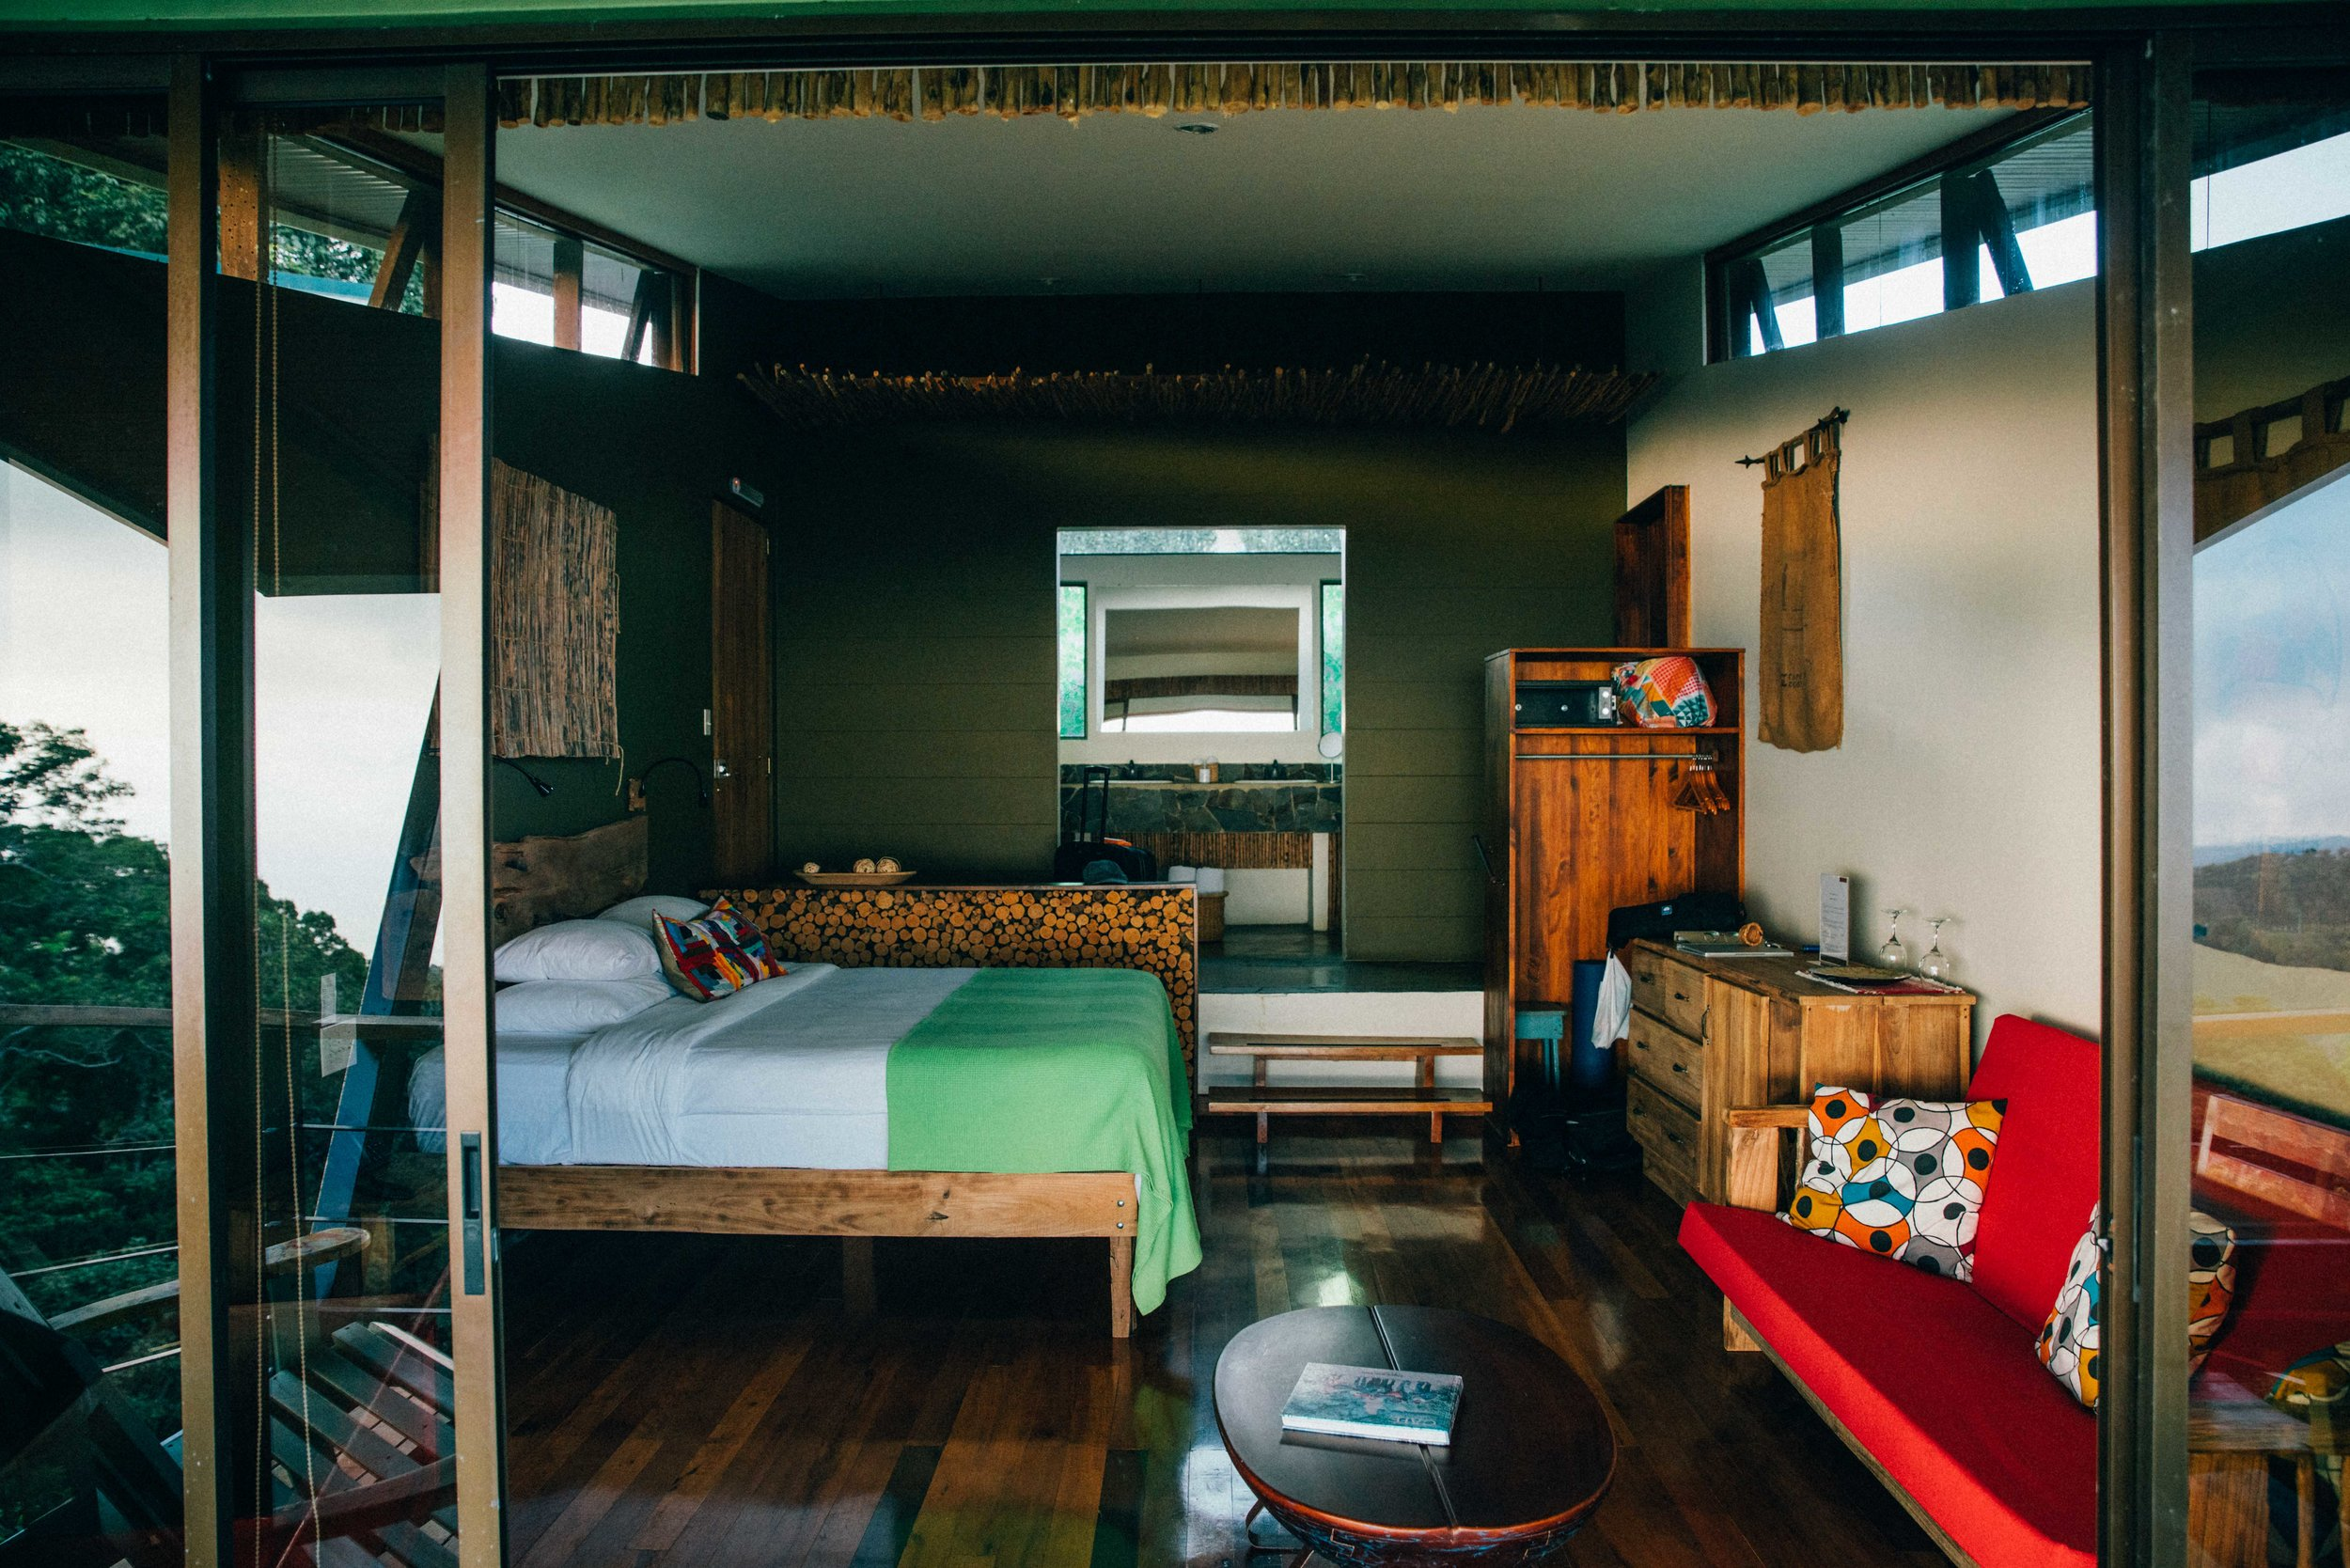 chayote lodge costa rica interior